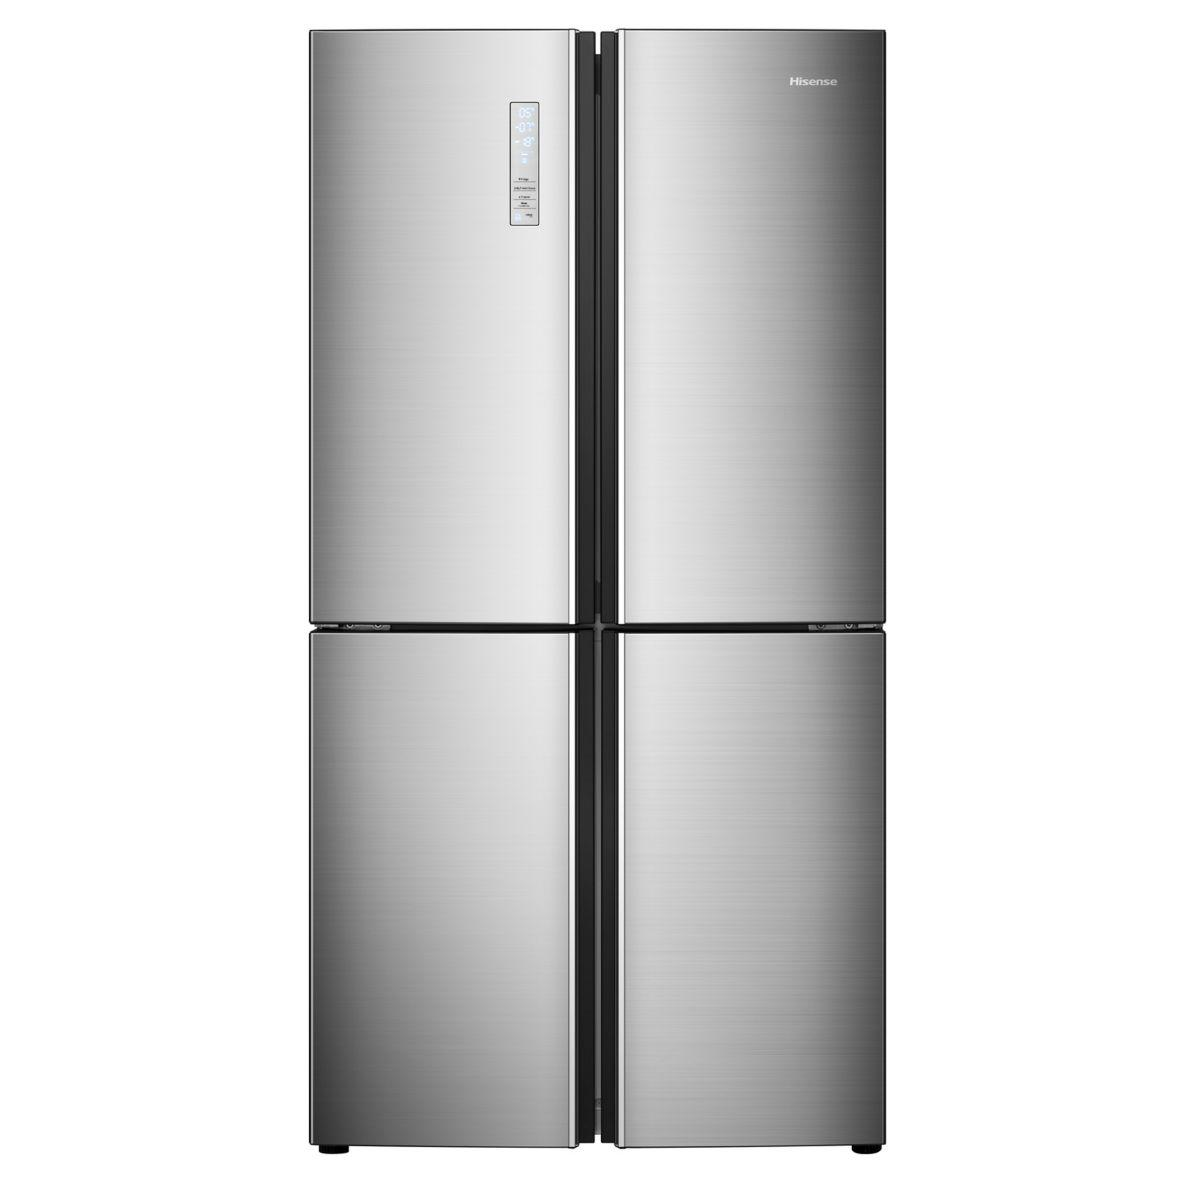 Promo Refrigerateur Refrigerateur Americain En Promos And Soldes Discount Total